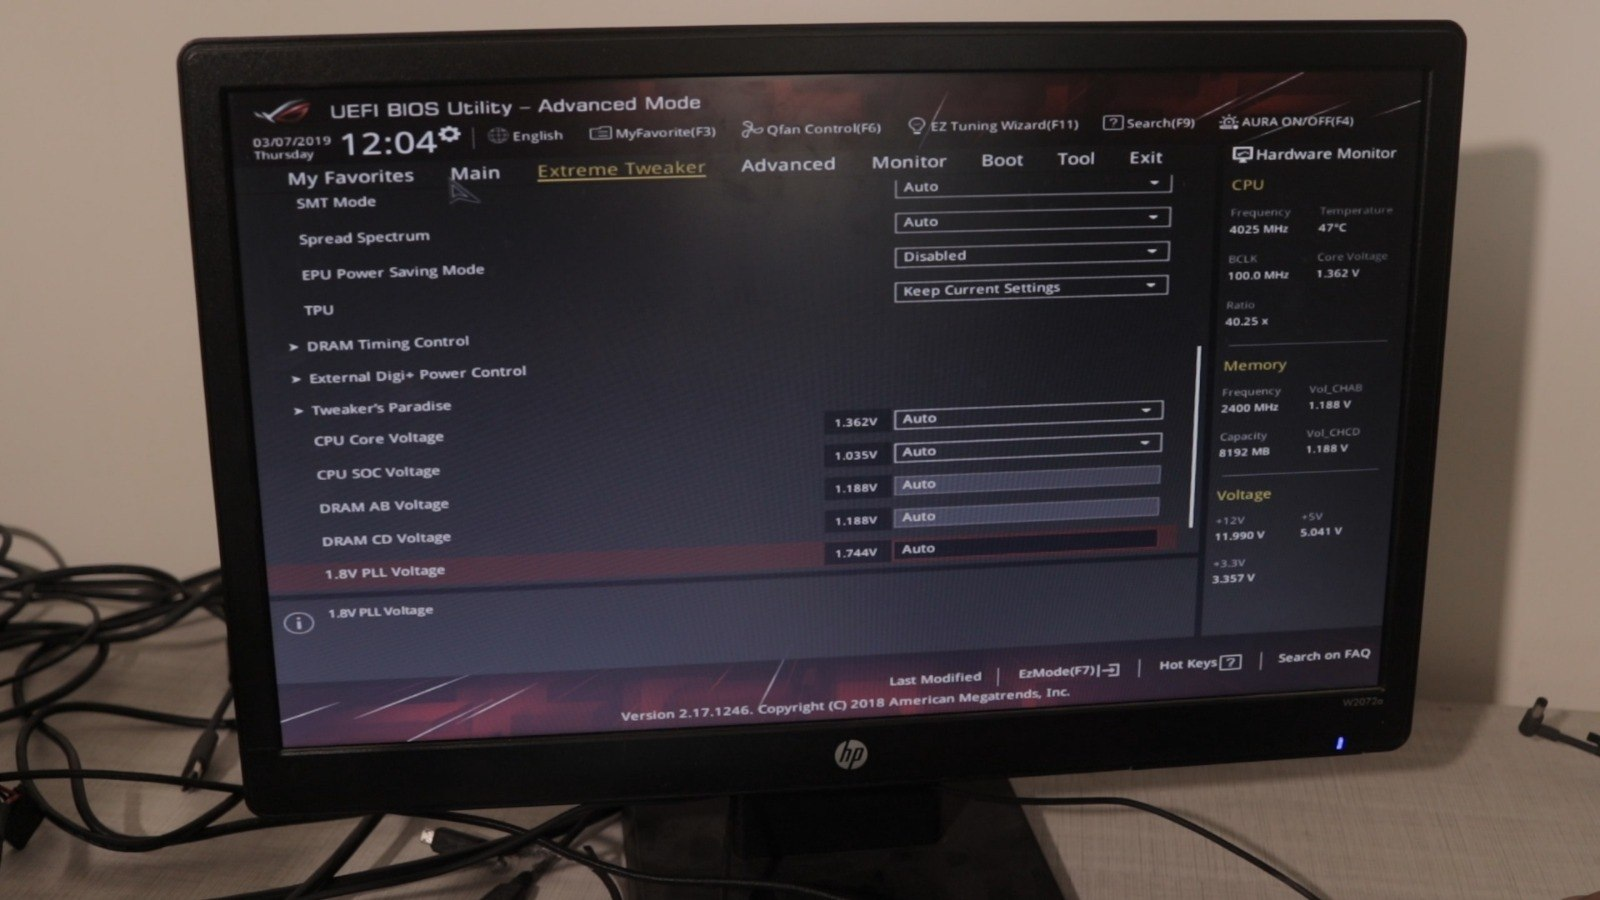 Asus ROG Zenith Extreme Alpha bios